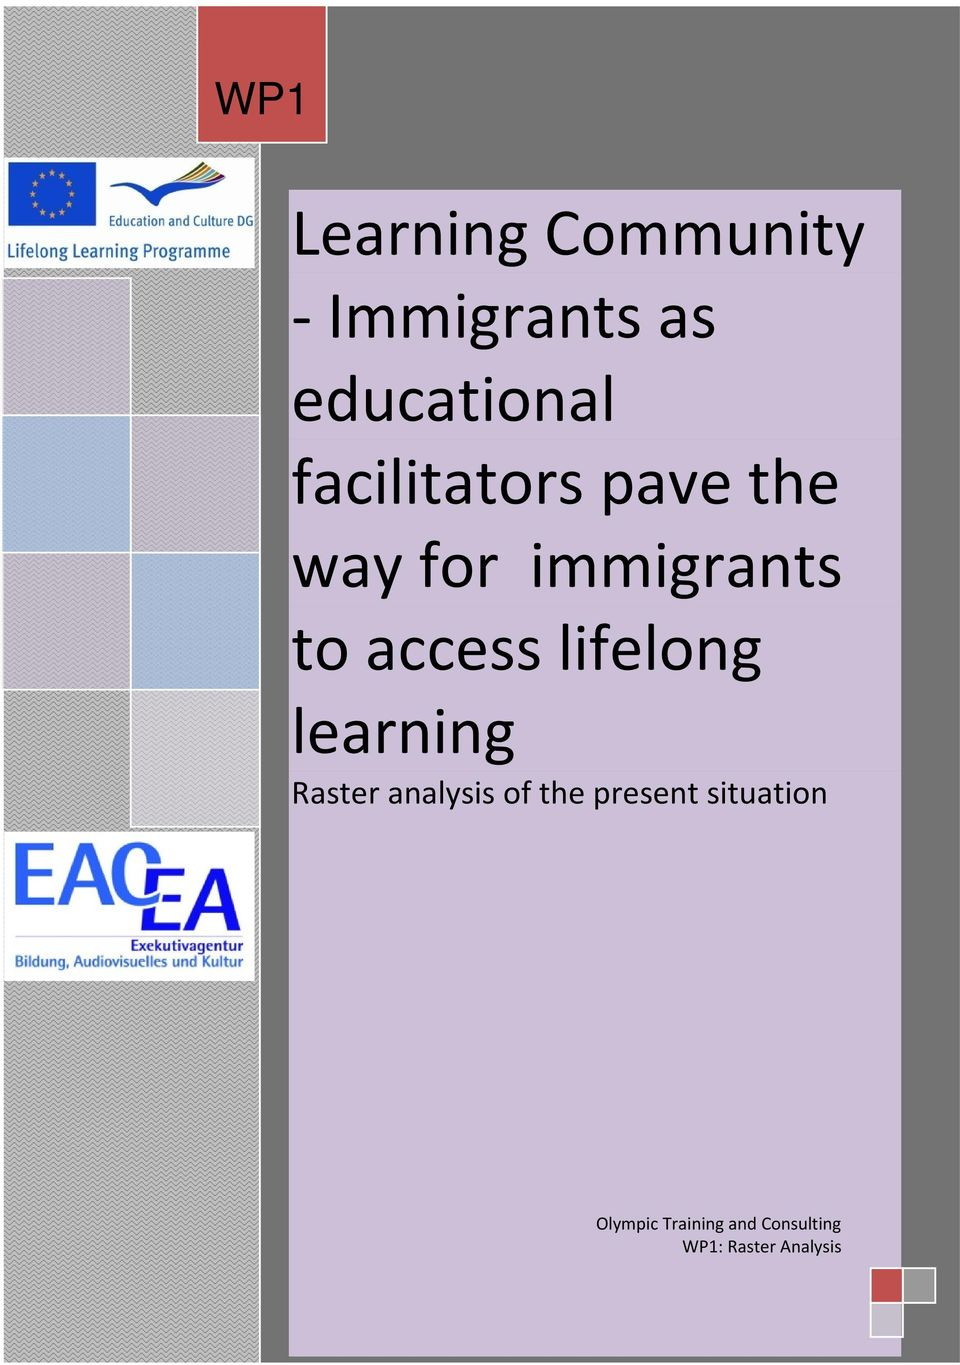 Immigrants as educational facilitators pave the way for immigrants to access